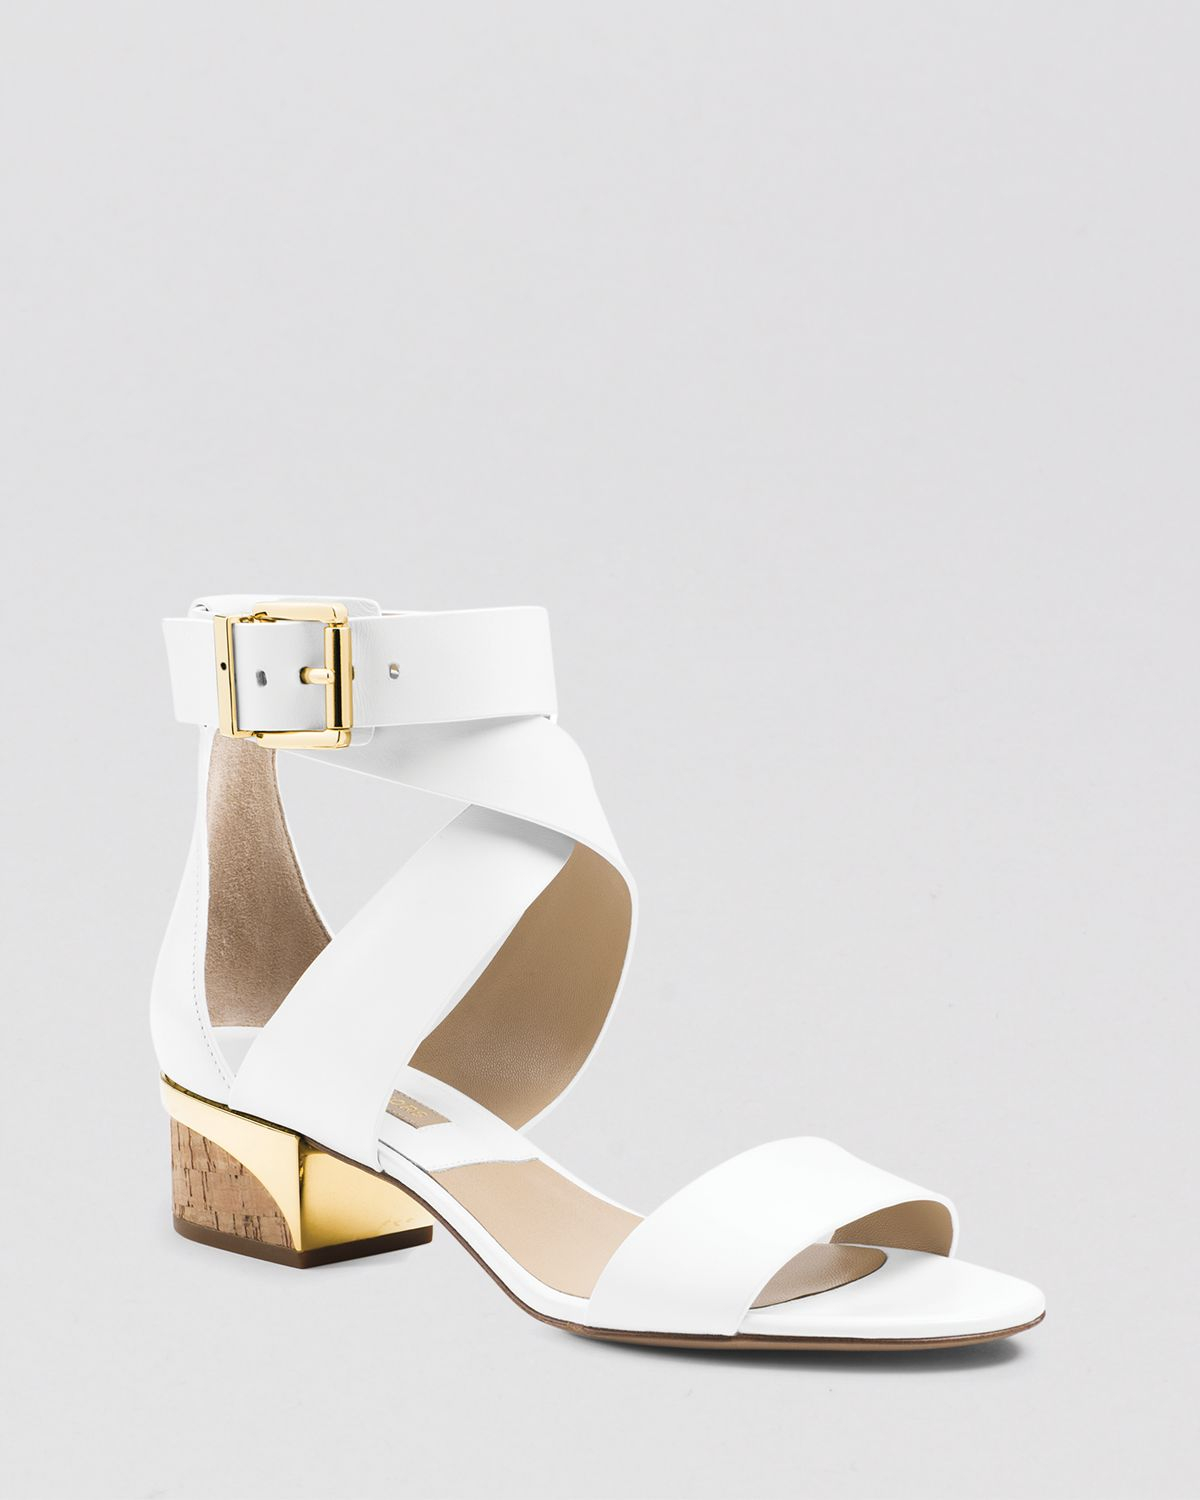 Michael kors City Sandals - Tulia Block Heel in White | Lyst